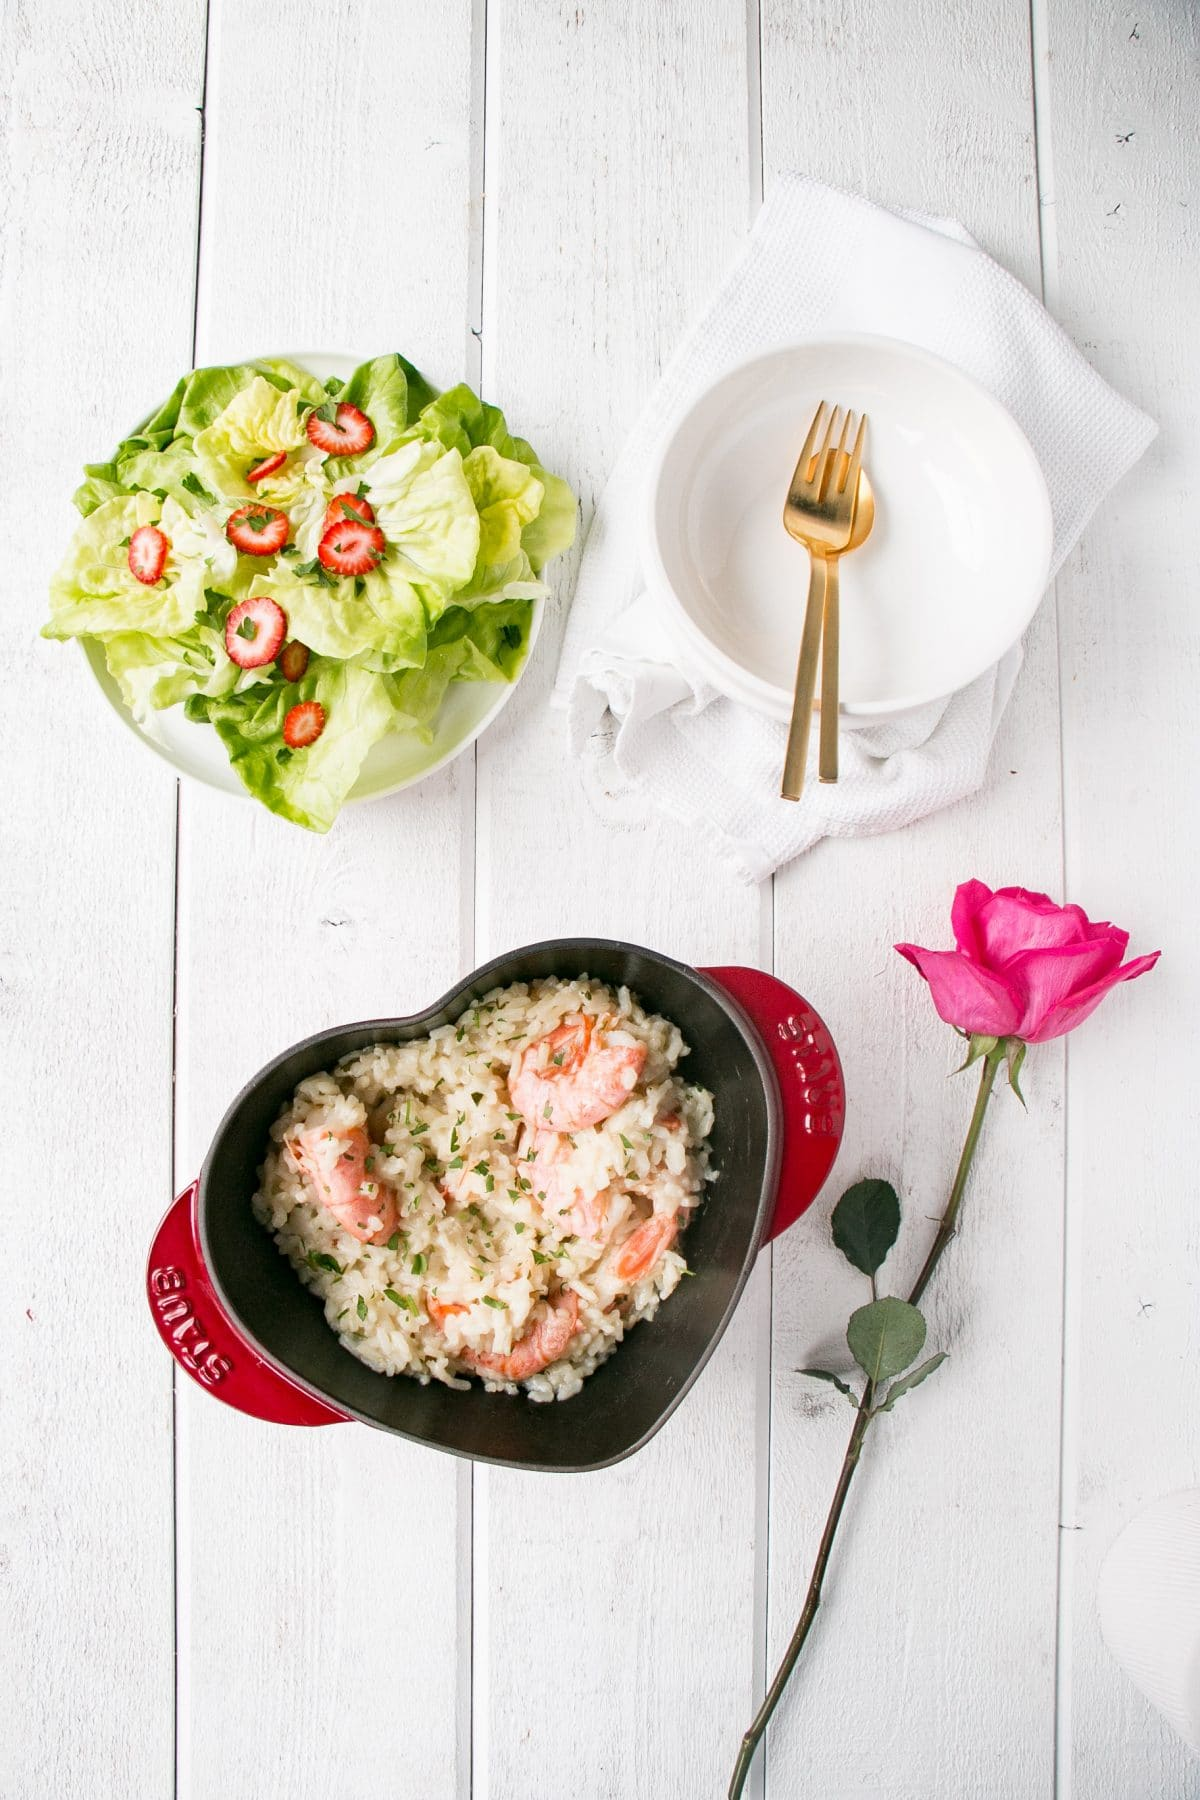 Make Date Night, special, delicious and relaxed with this Oven Baked Garlic Butter Prawn Risotto. #valentinesday #risotto #datenight #rice #seafood